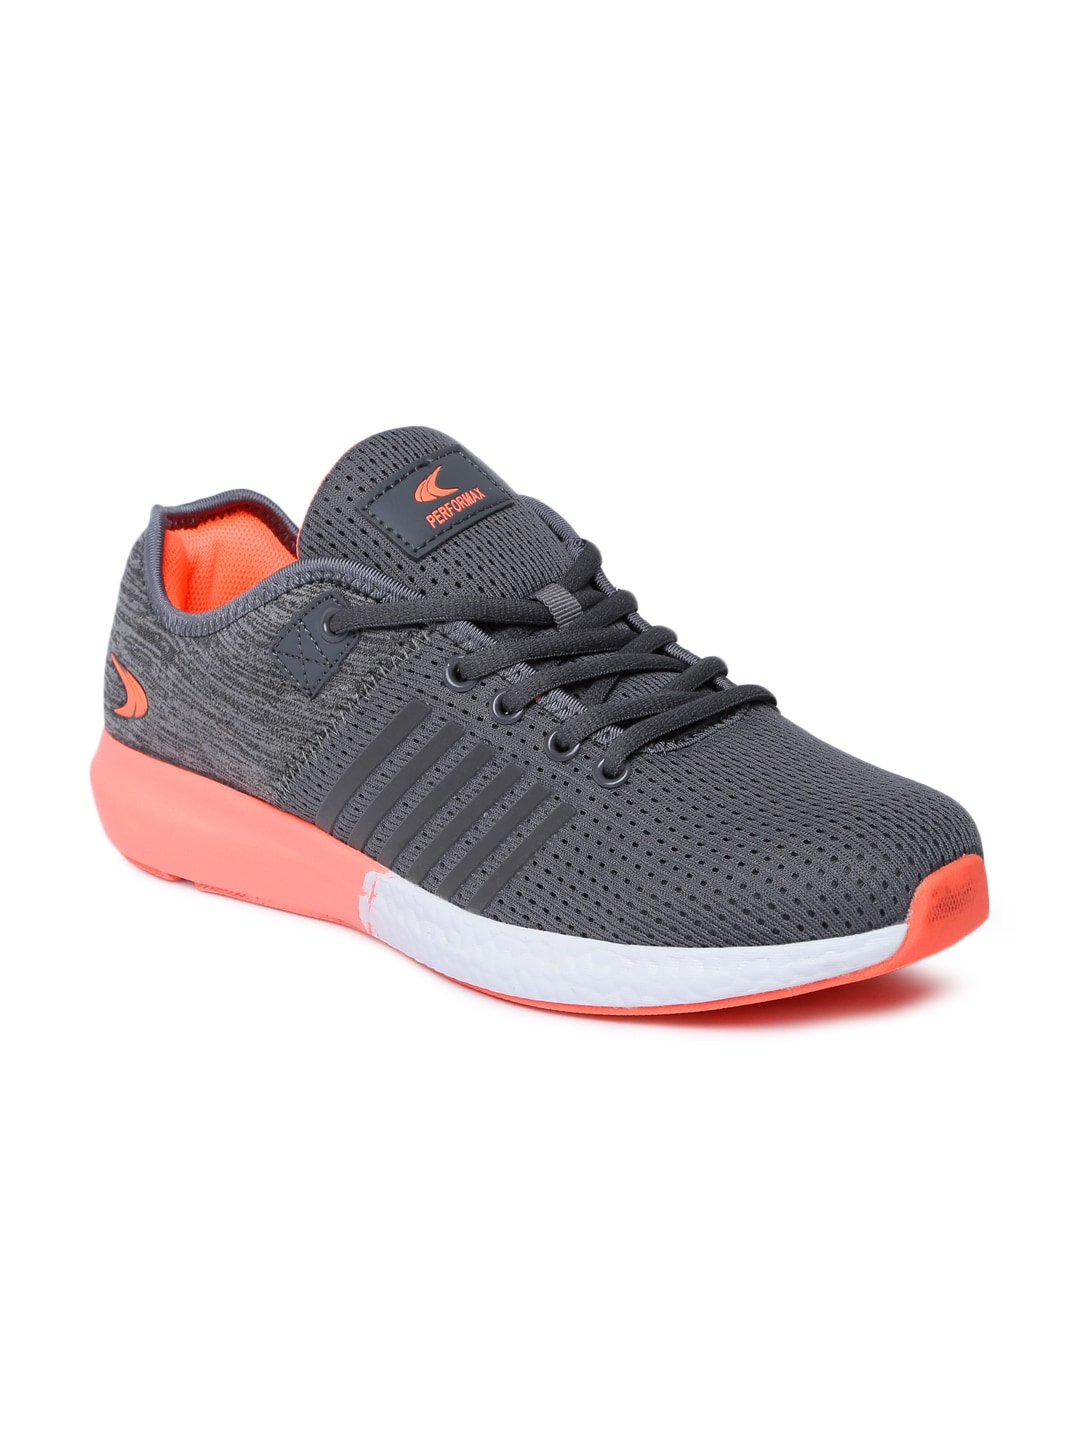 e4de23b6fd Performax Sports Shoes - Buy Performax Sports Shoes online in India